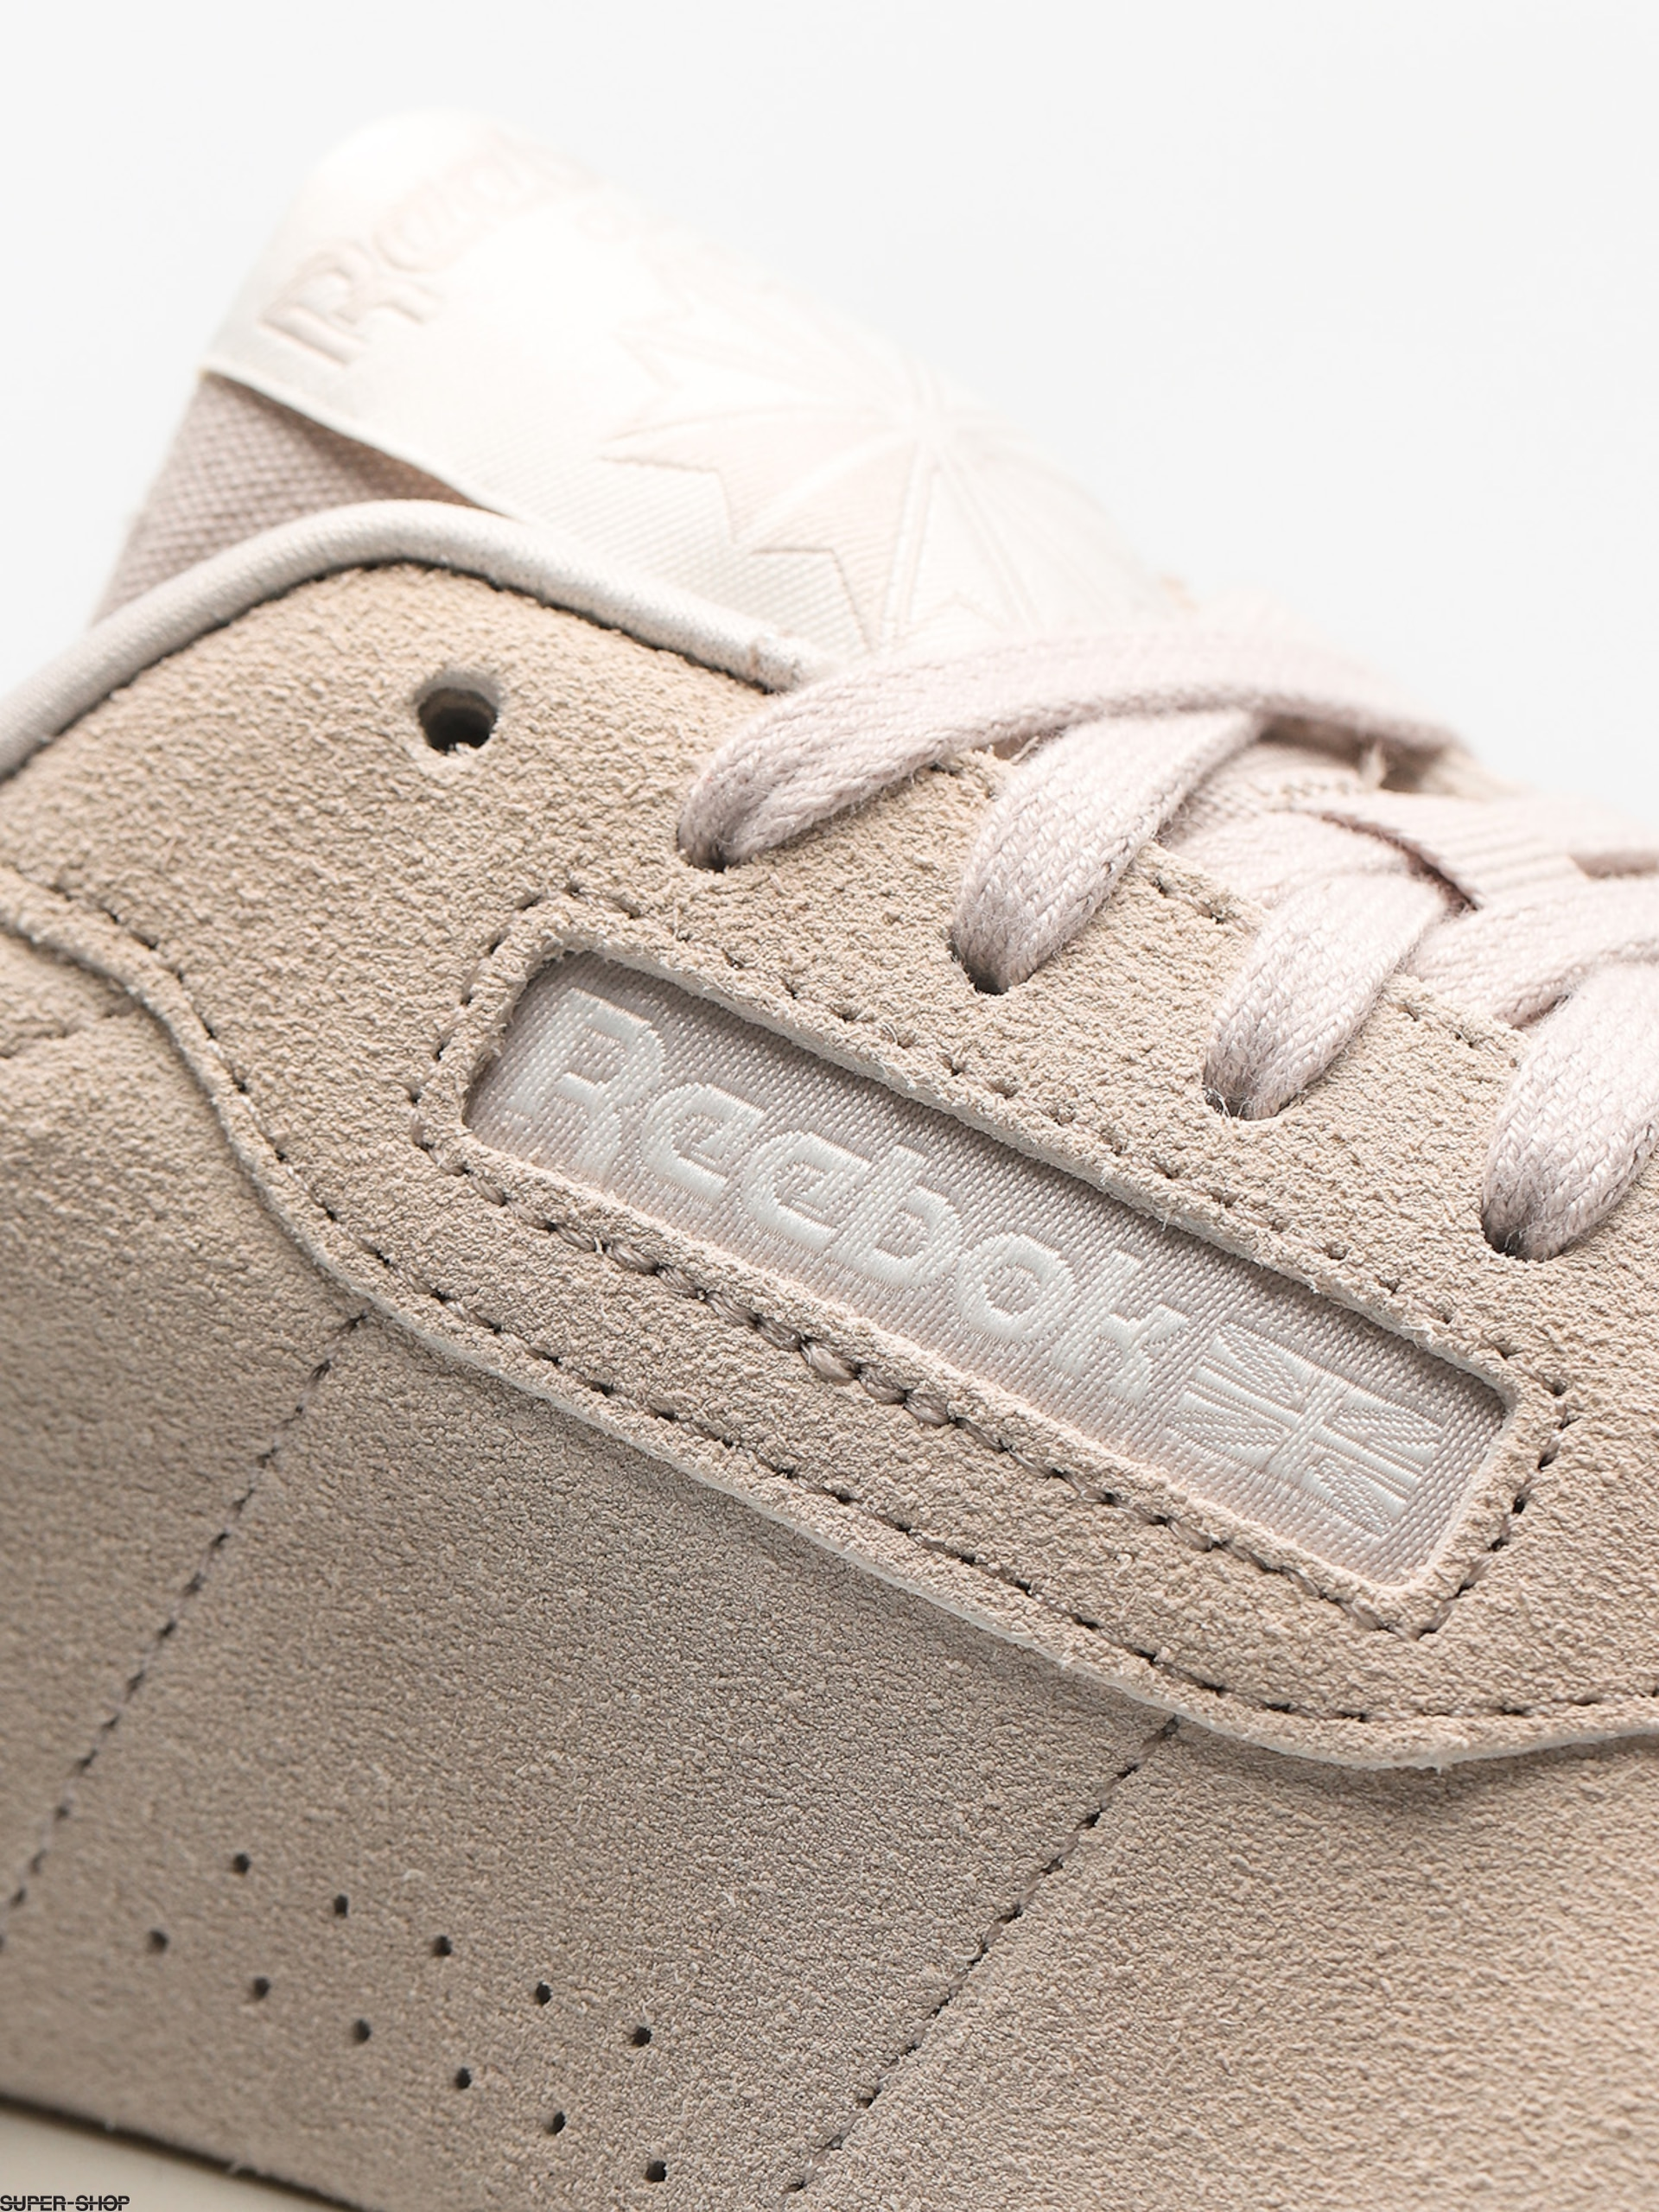 605bee9ea3a2f Reebok Shoes Princess Woven Emb Wmn (sandstone chalk)